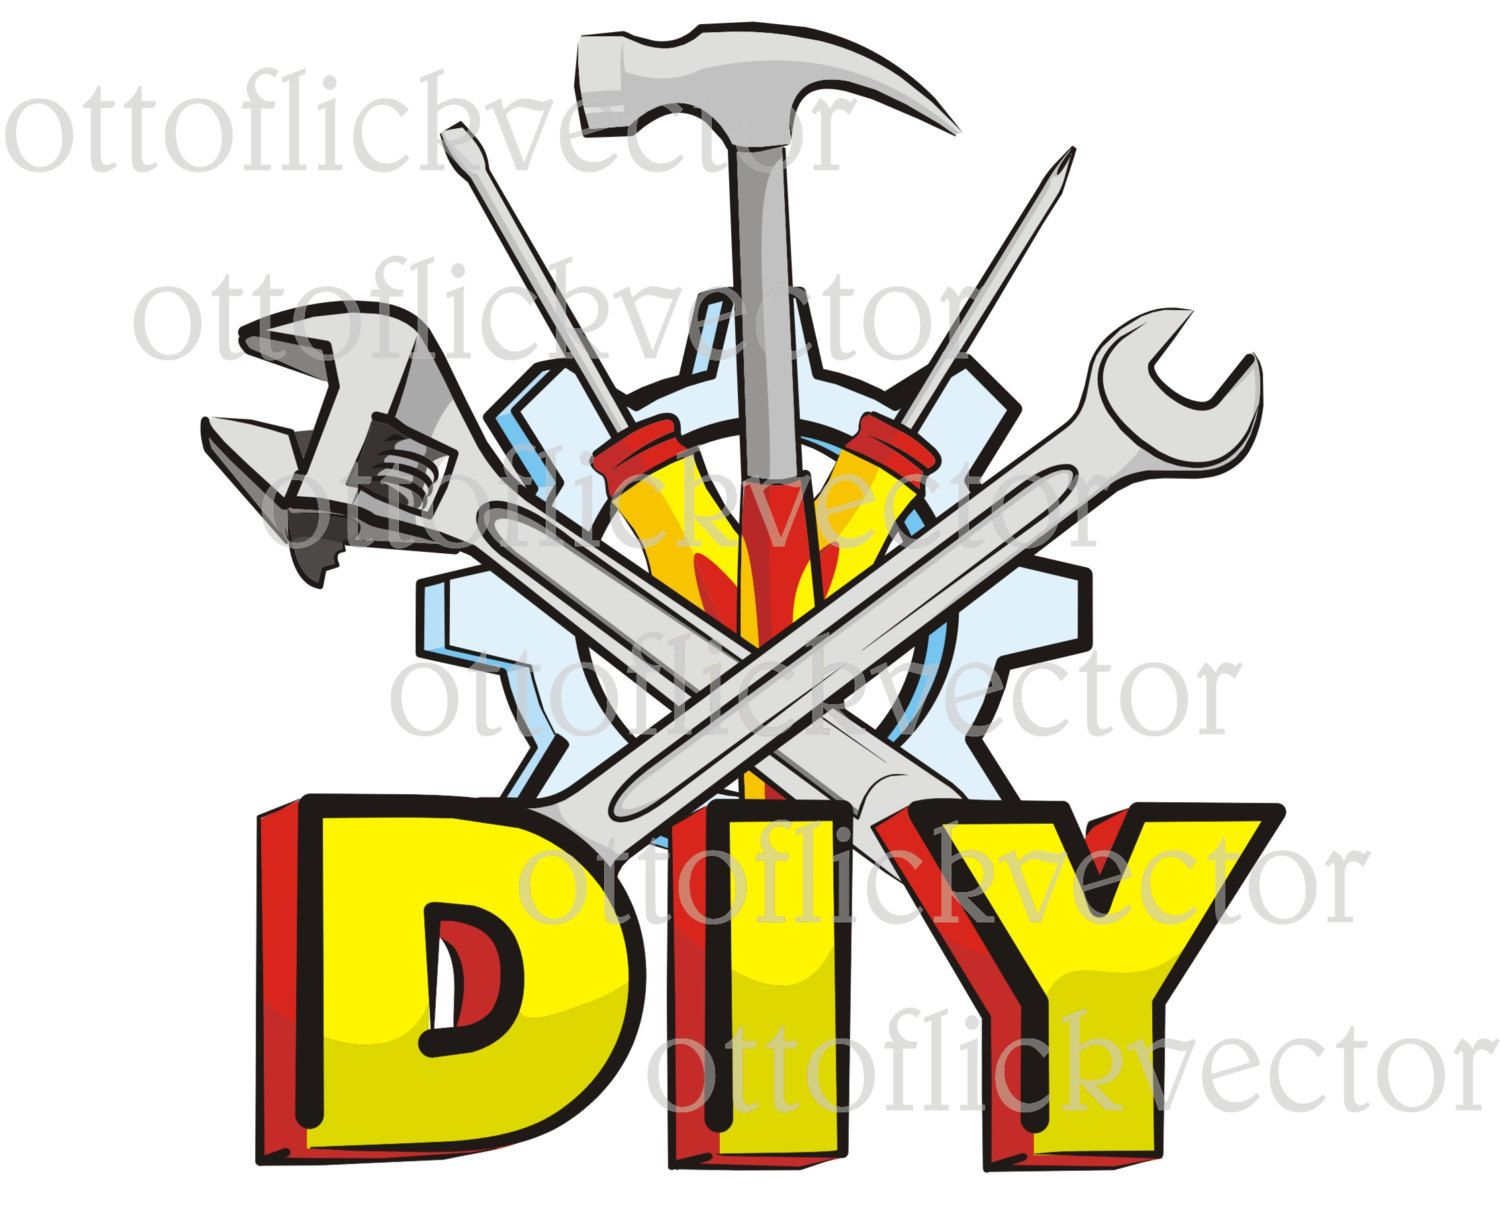 Handyman diy vector clipart do it yourself tools eps ai cdr png handyman diy vector clipart do it yourself tools eps ai cdr png solutioingenieria Image collections